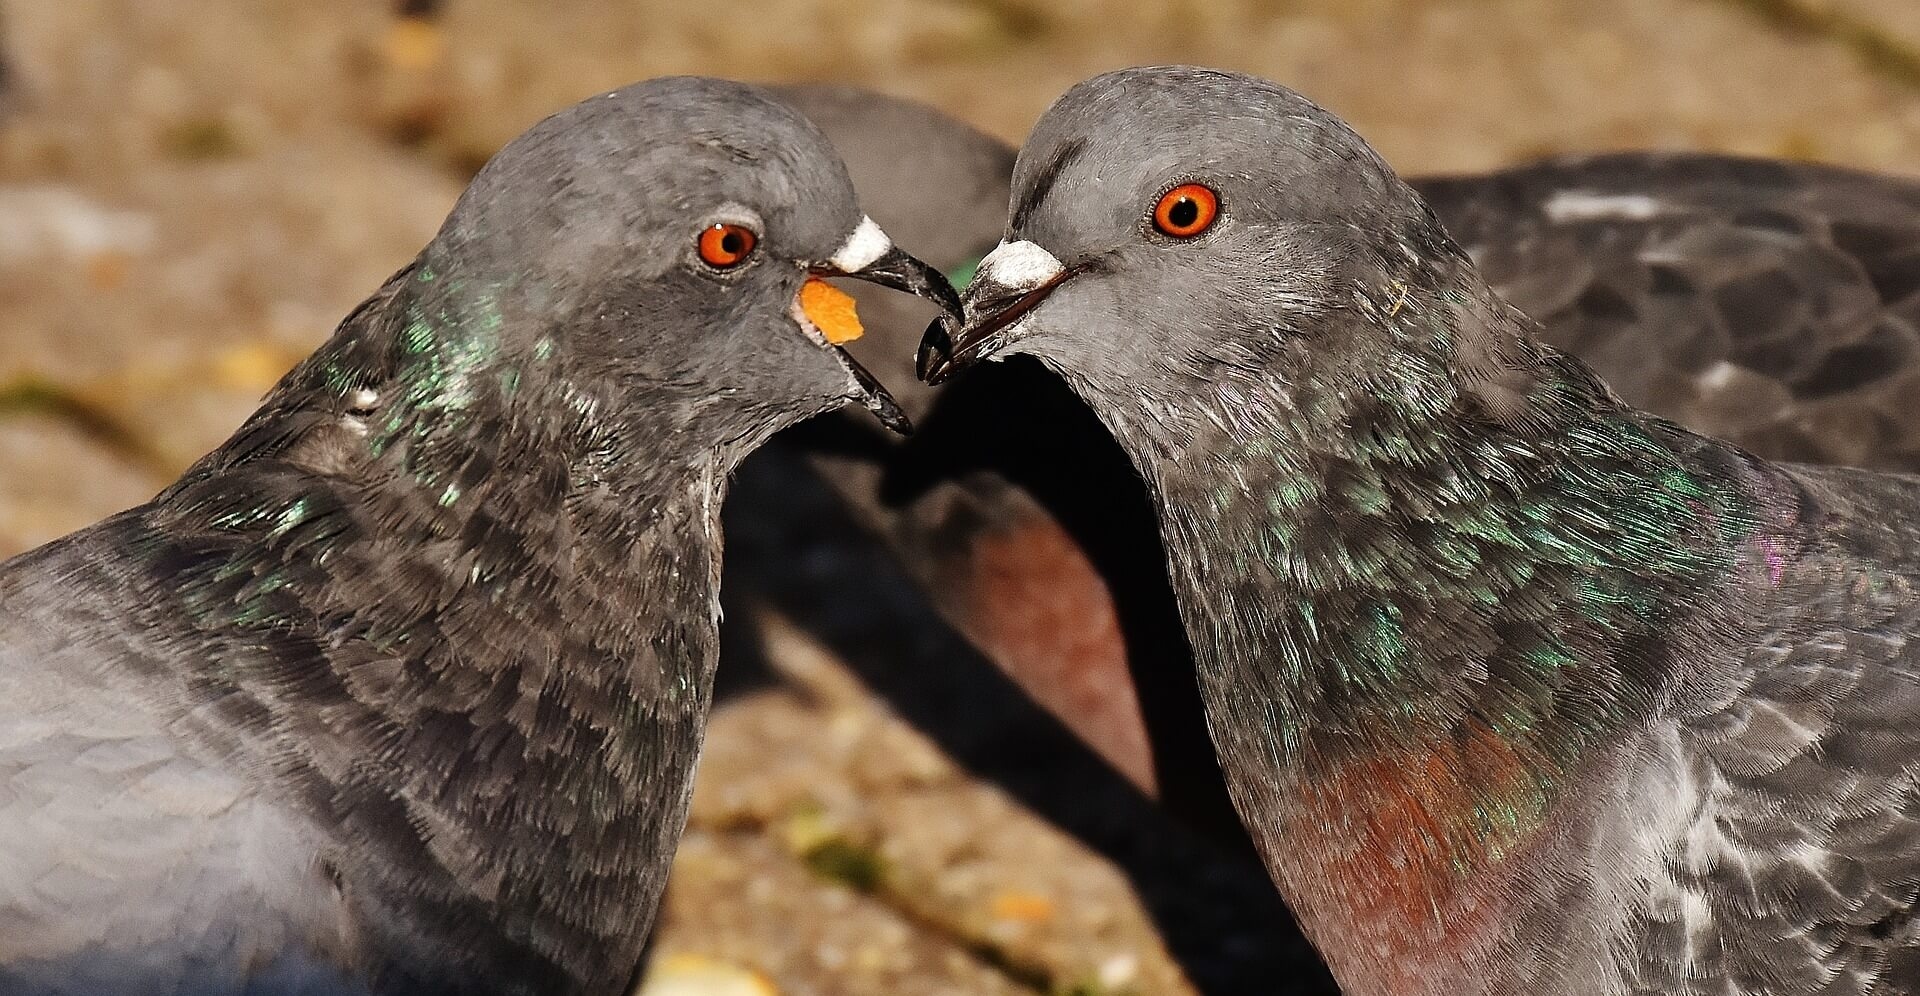 news_header_v1_city-pigeons-1697019_1920